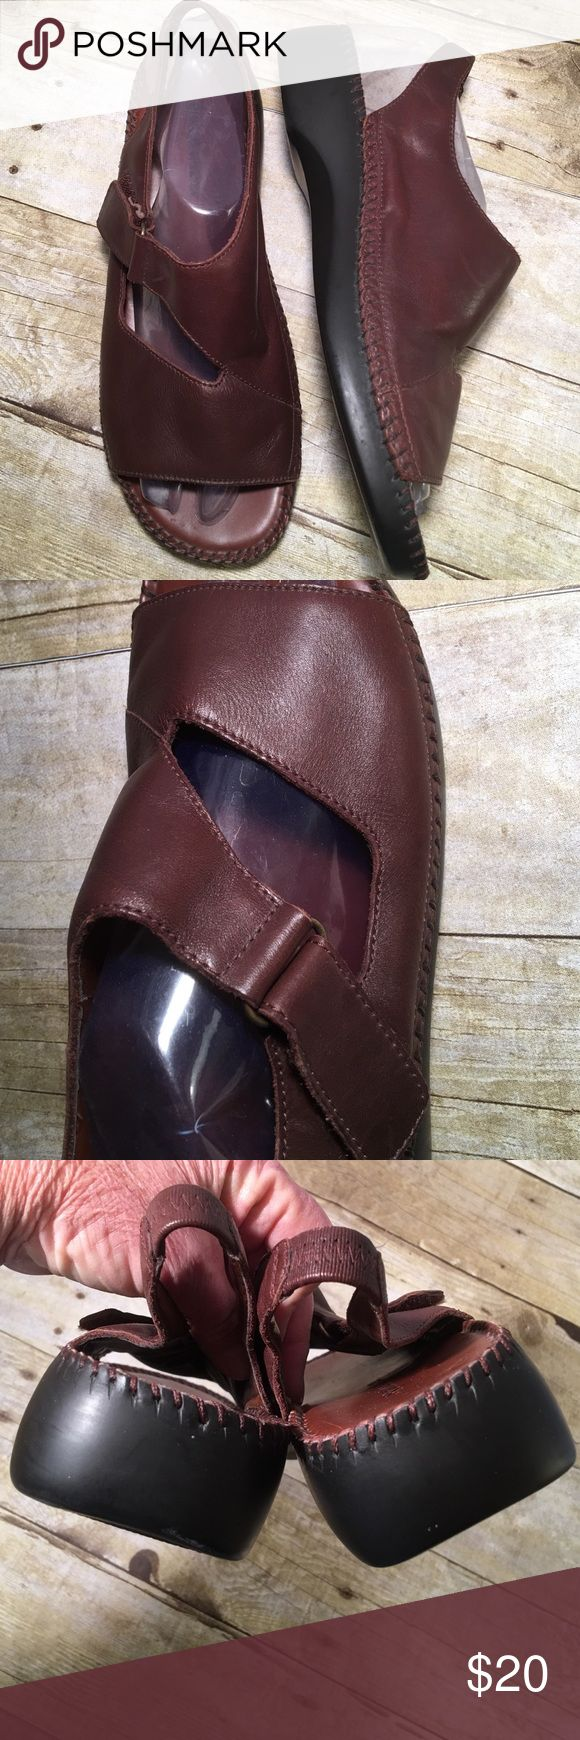 """Naturalized Brown Velcro Straps Leather Upper 91/2 Great pair of very cushioned instep. Non slip sole. Velcro straps. All stitching is intact. 1 1/2"""" wedge. Excellent condition and comes from my non smoking home Naturalizer Shoes Sandals"""